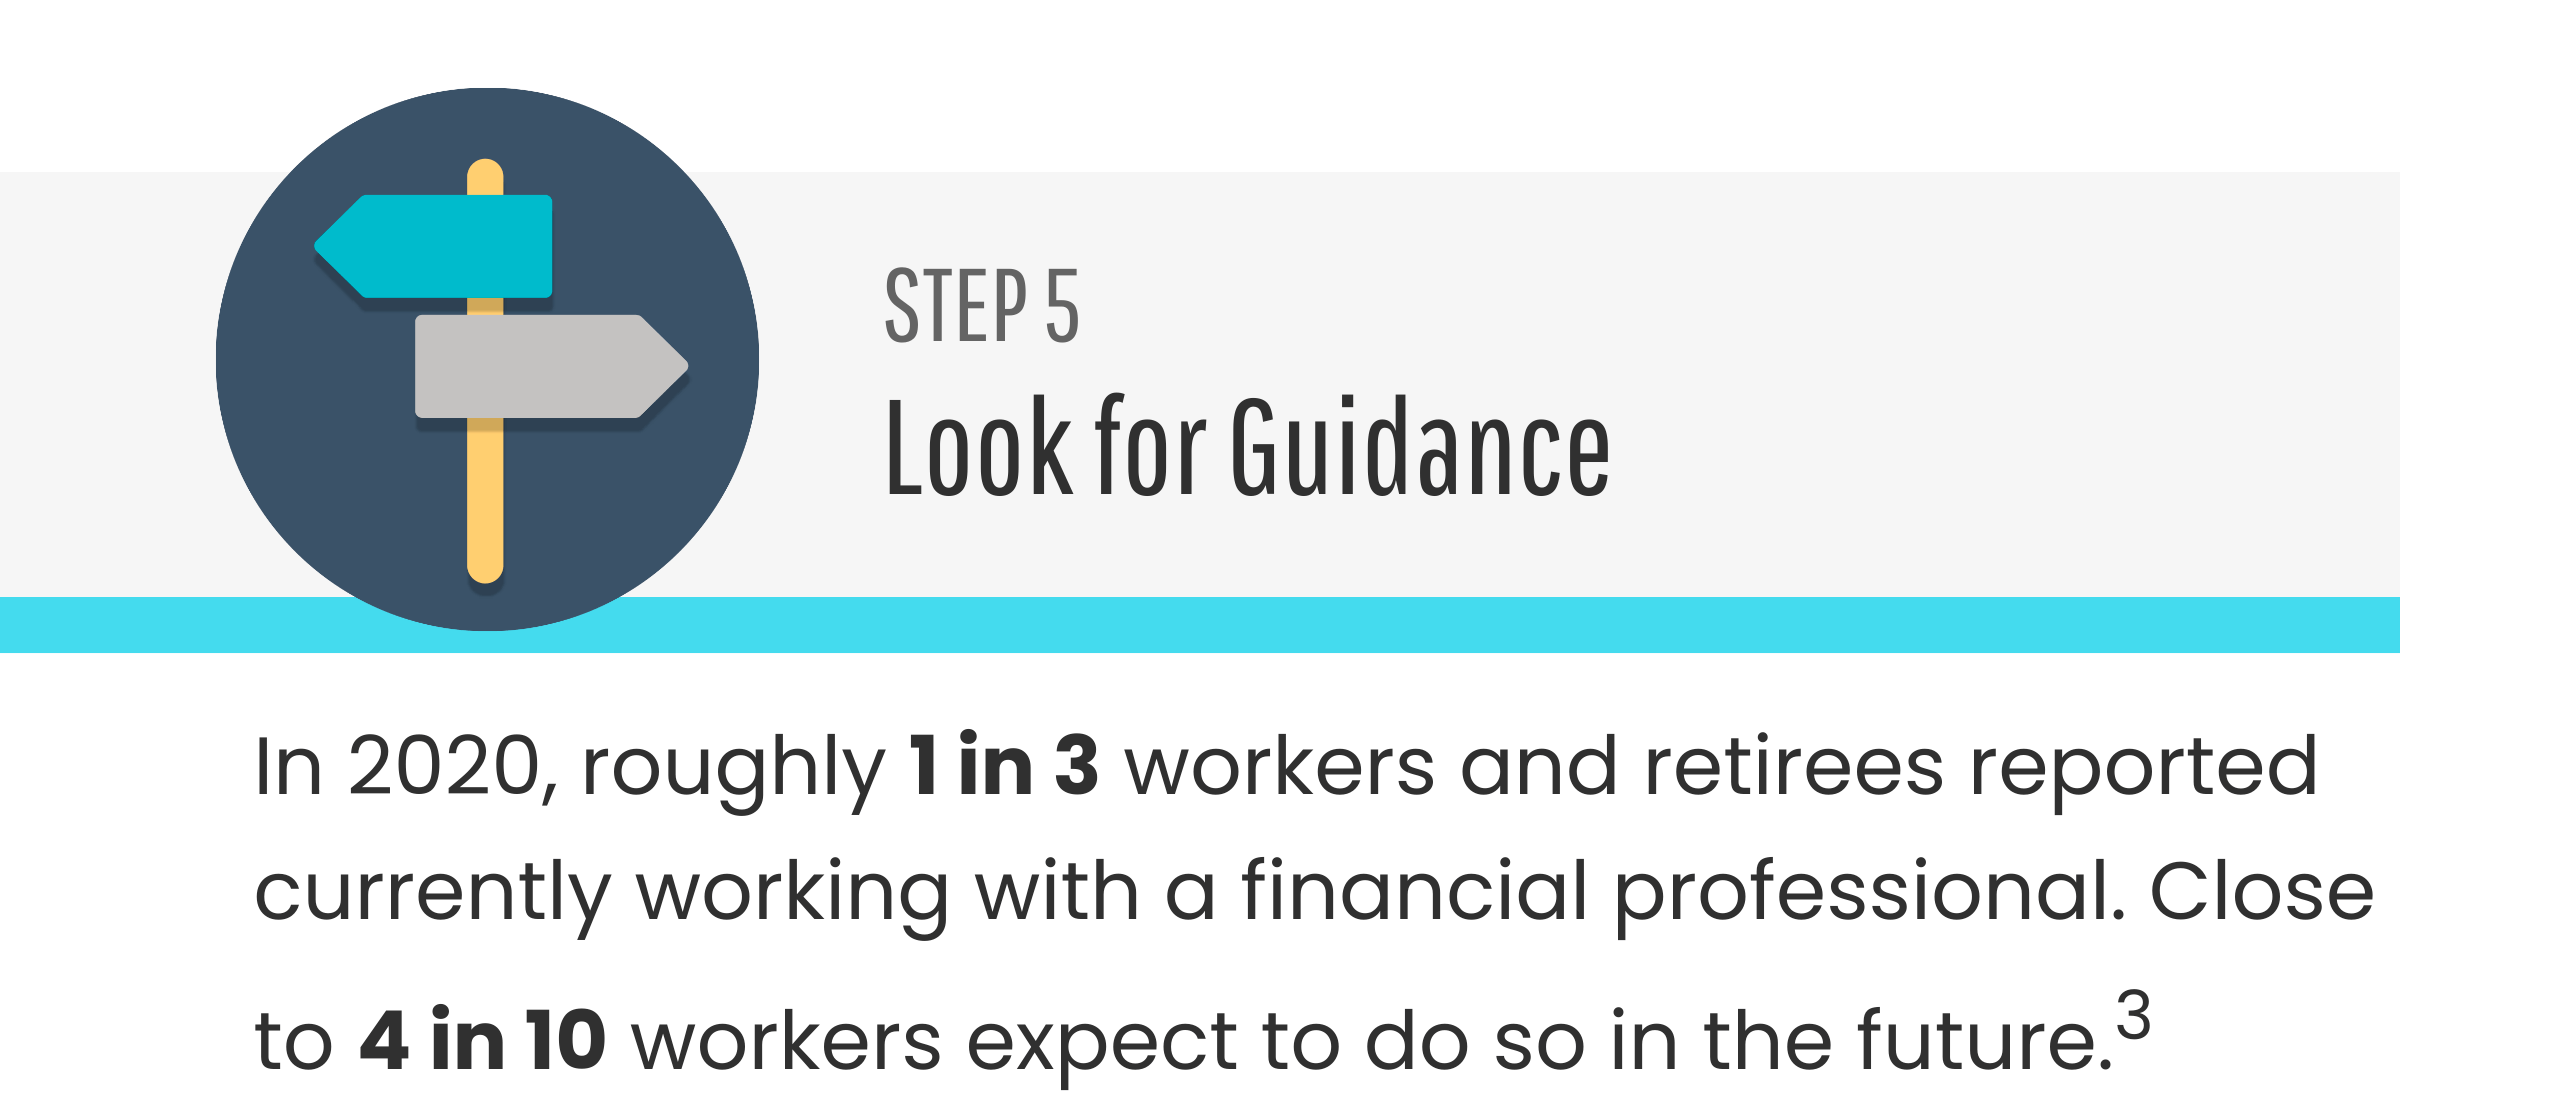 Step 5: Look for Guidance. In 2020, roughly 1 in 3 workers and retirees reported working with a financial professional. Close to 4 in 10 workers expect to do so in the future.